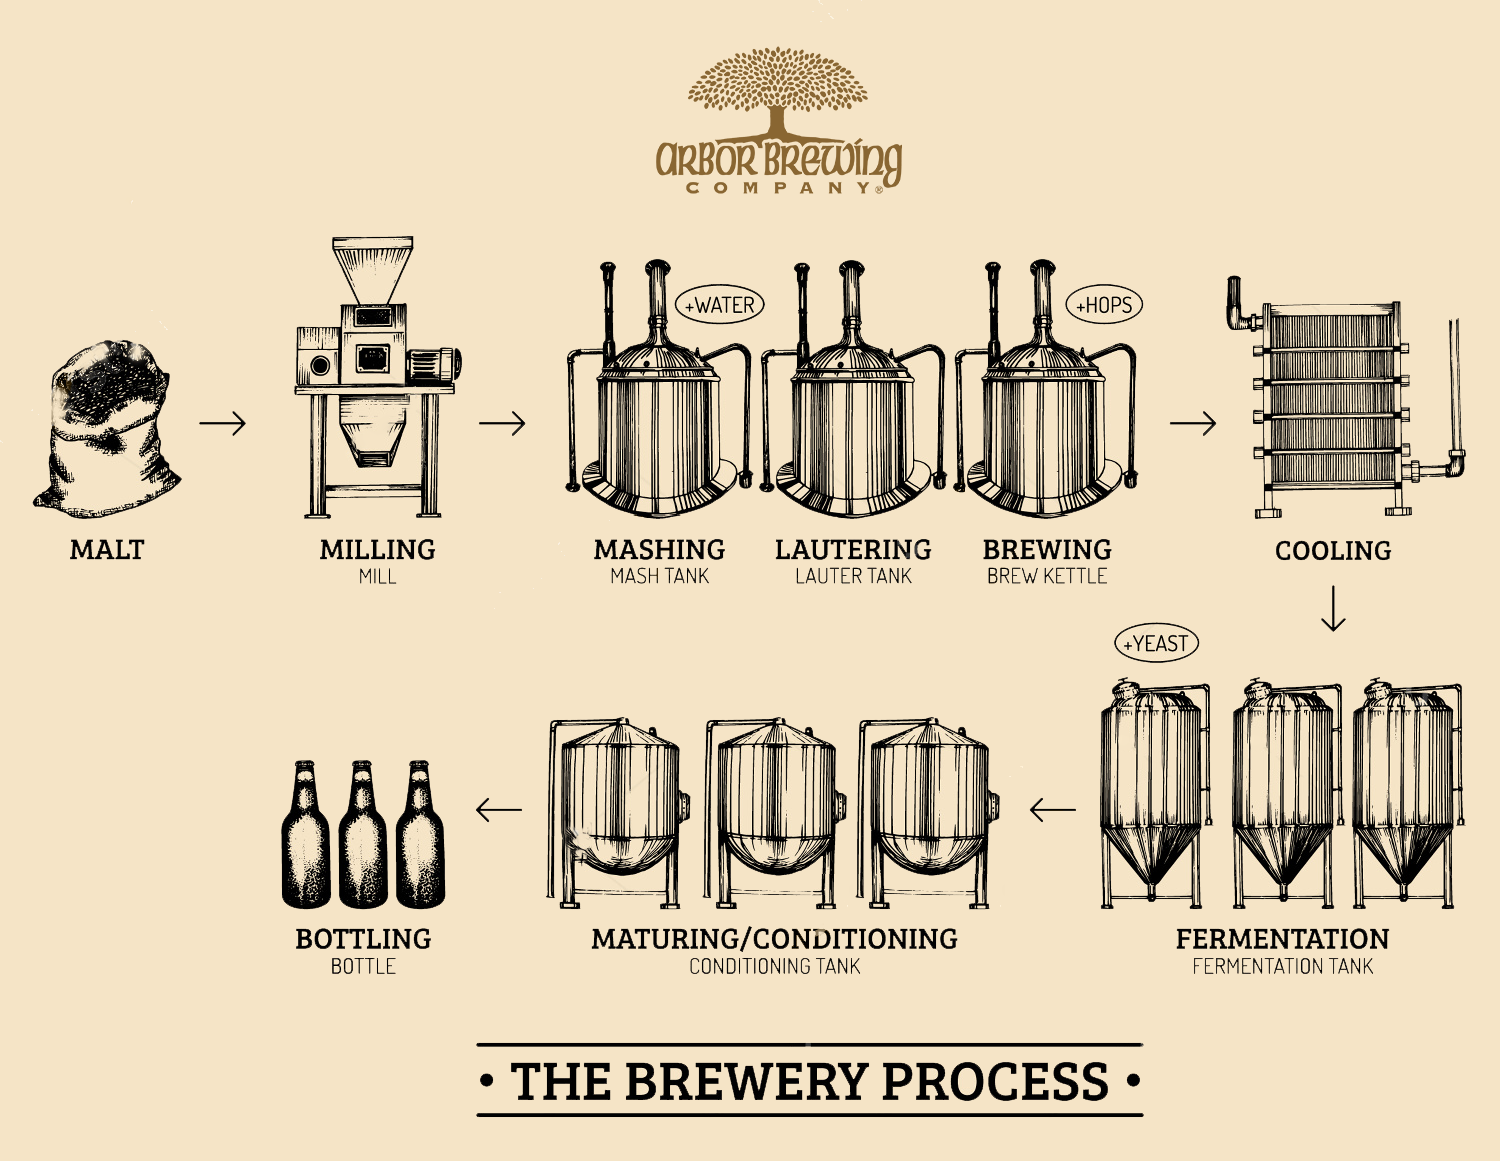 How we brew our beer arbor brewing company india pioneers of how we brew our beer arbor brewing company india pioneers of indian craft beer since 2012 pooptronica